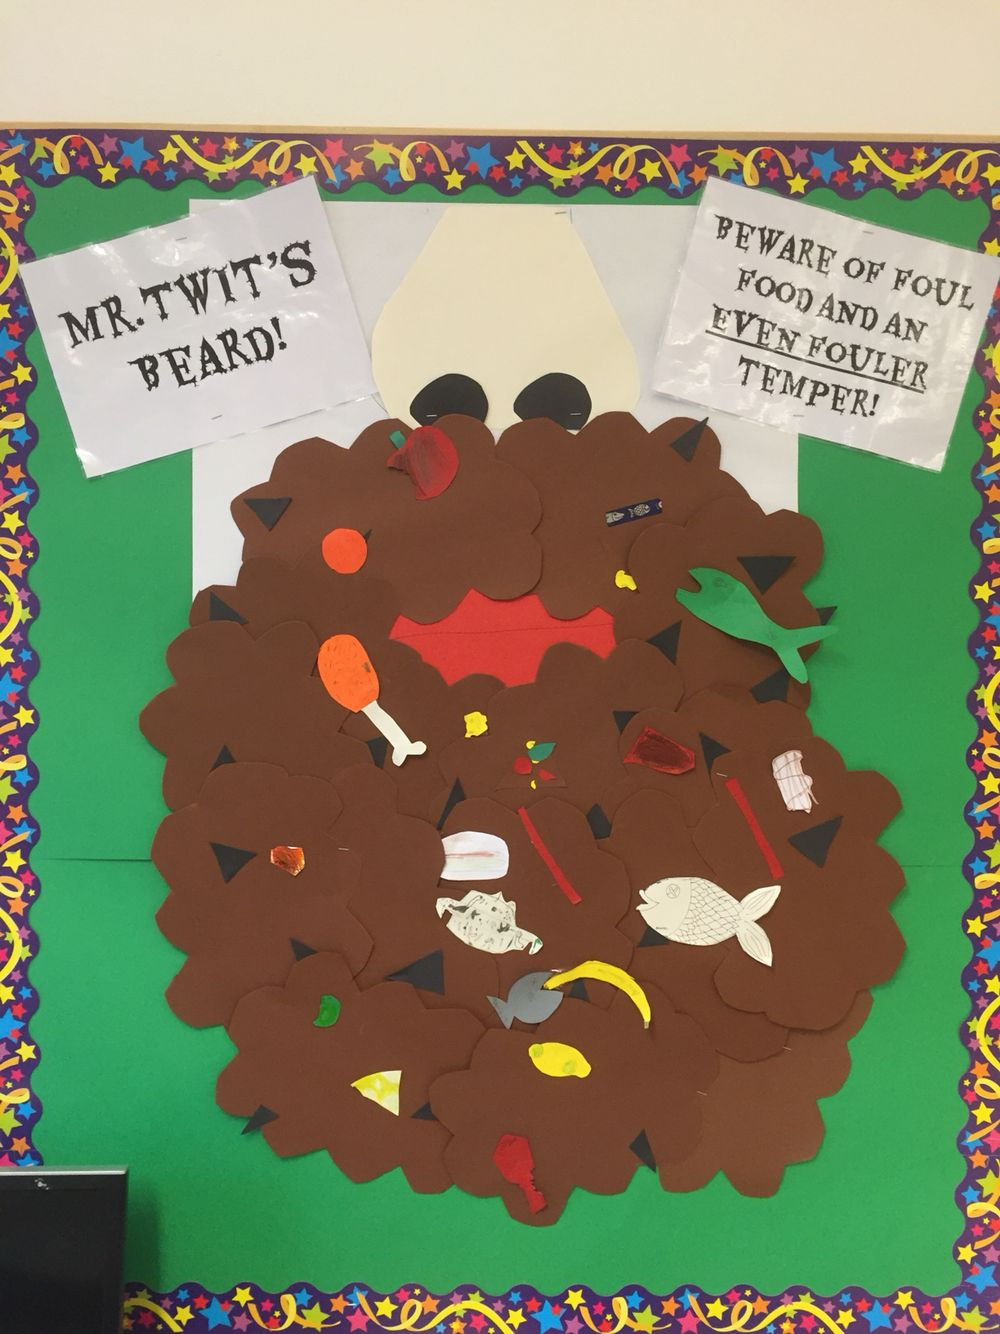 The Twits! Mr. Twit's foul beard. Activity for chapters 1-3 ...